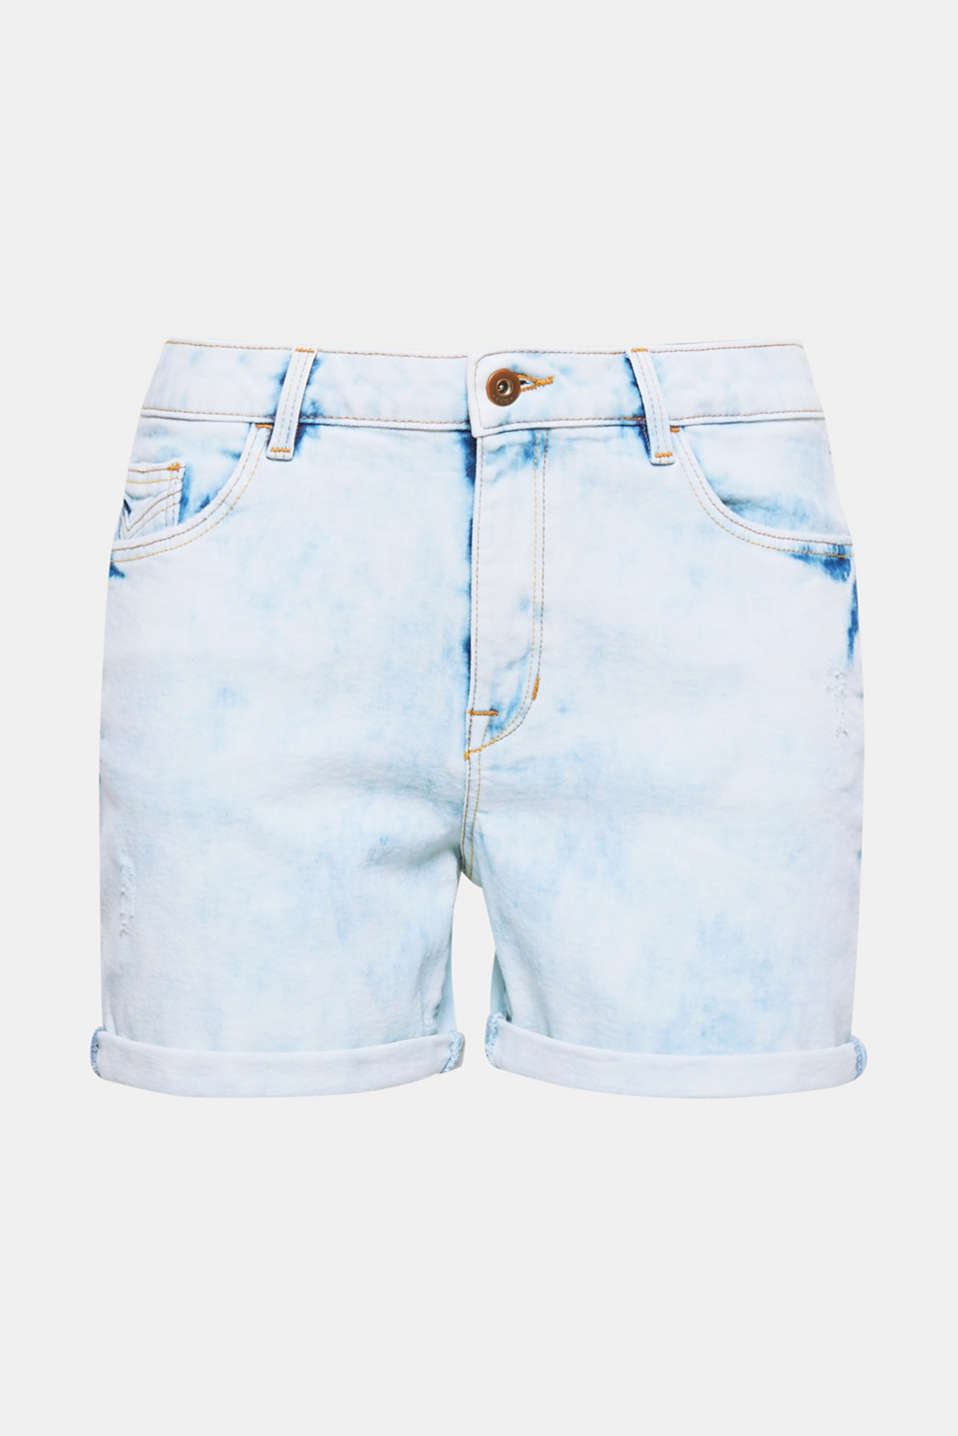 A must-have essential for cool summer looks! Shorts in distressed, stretch denim with adjustable turn-up hems.